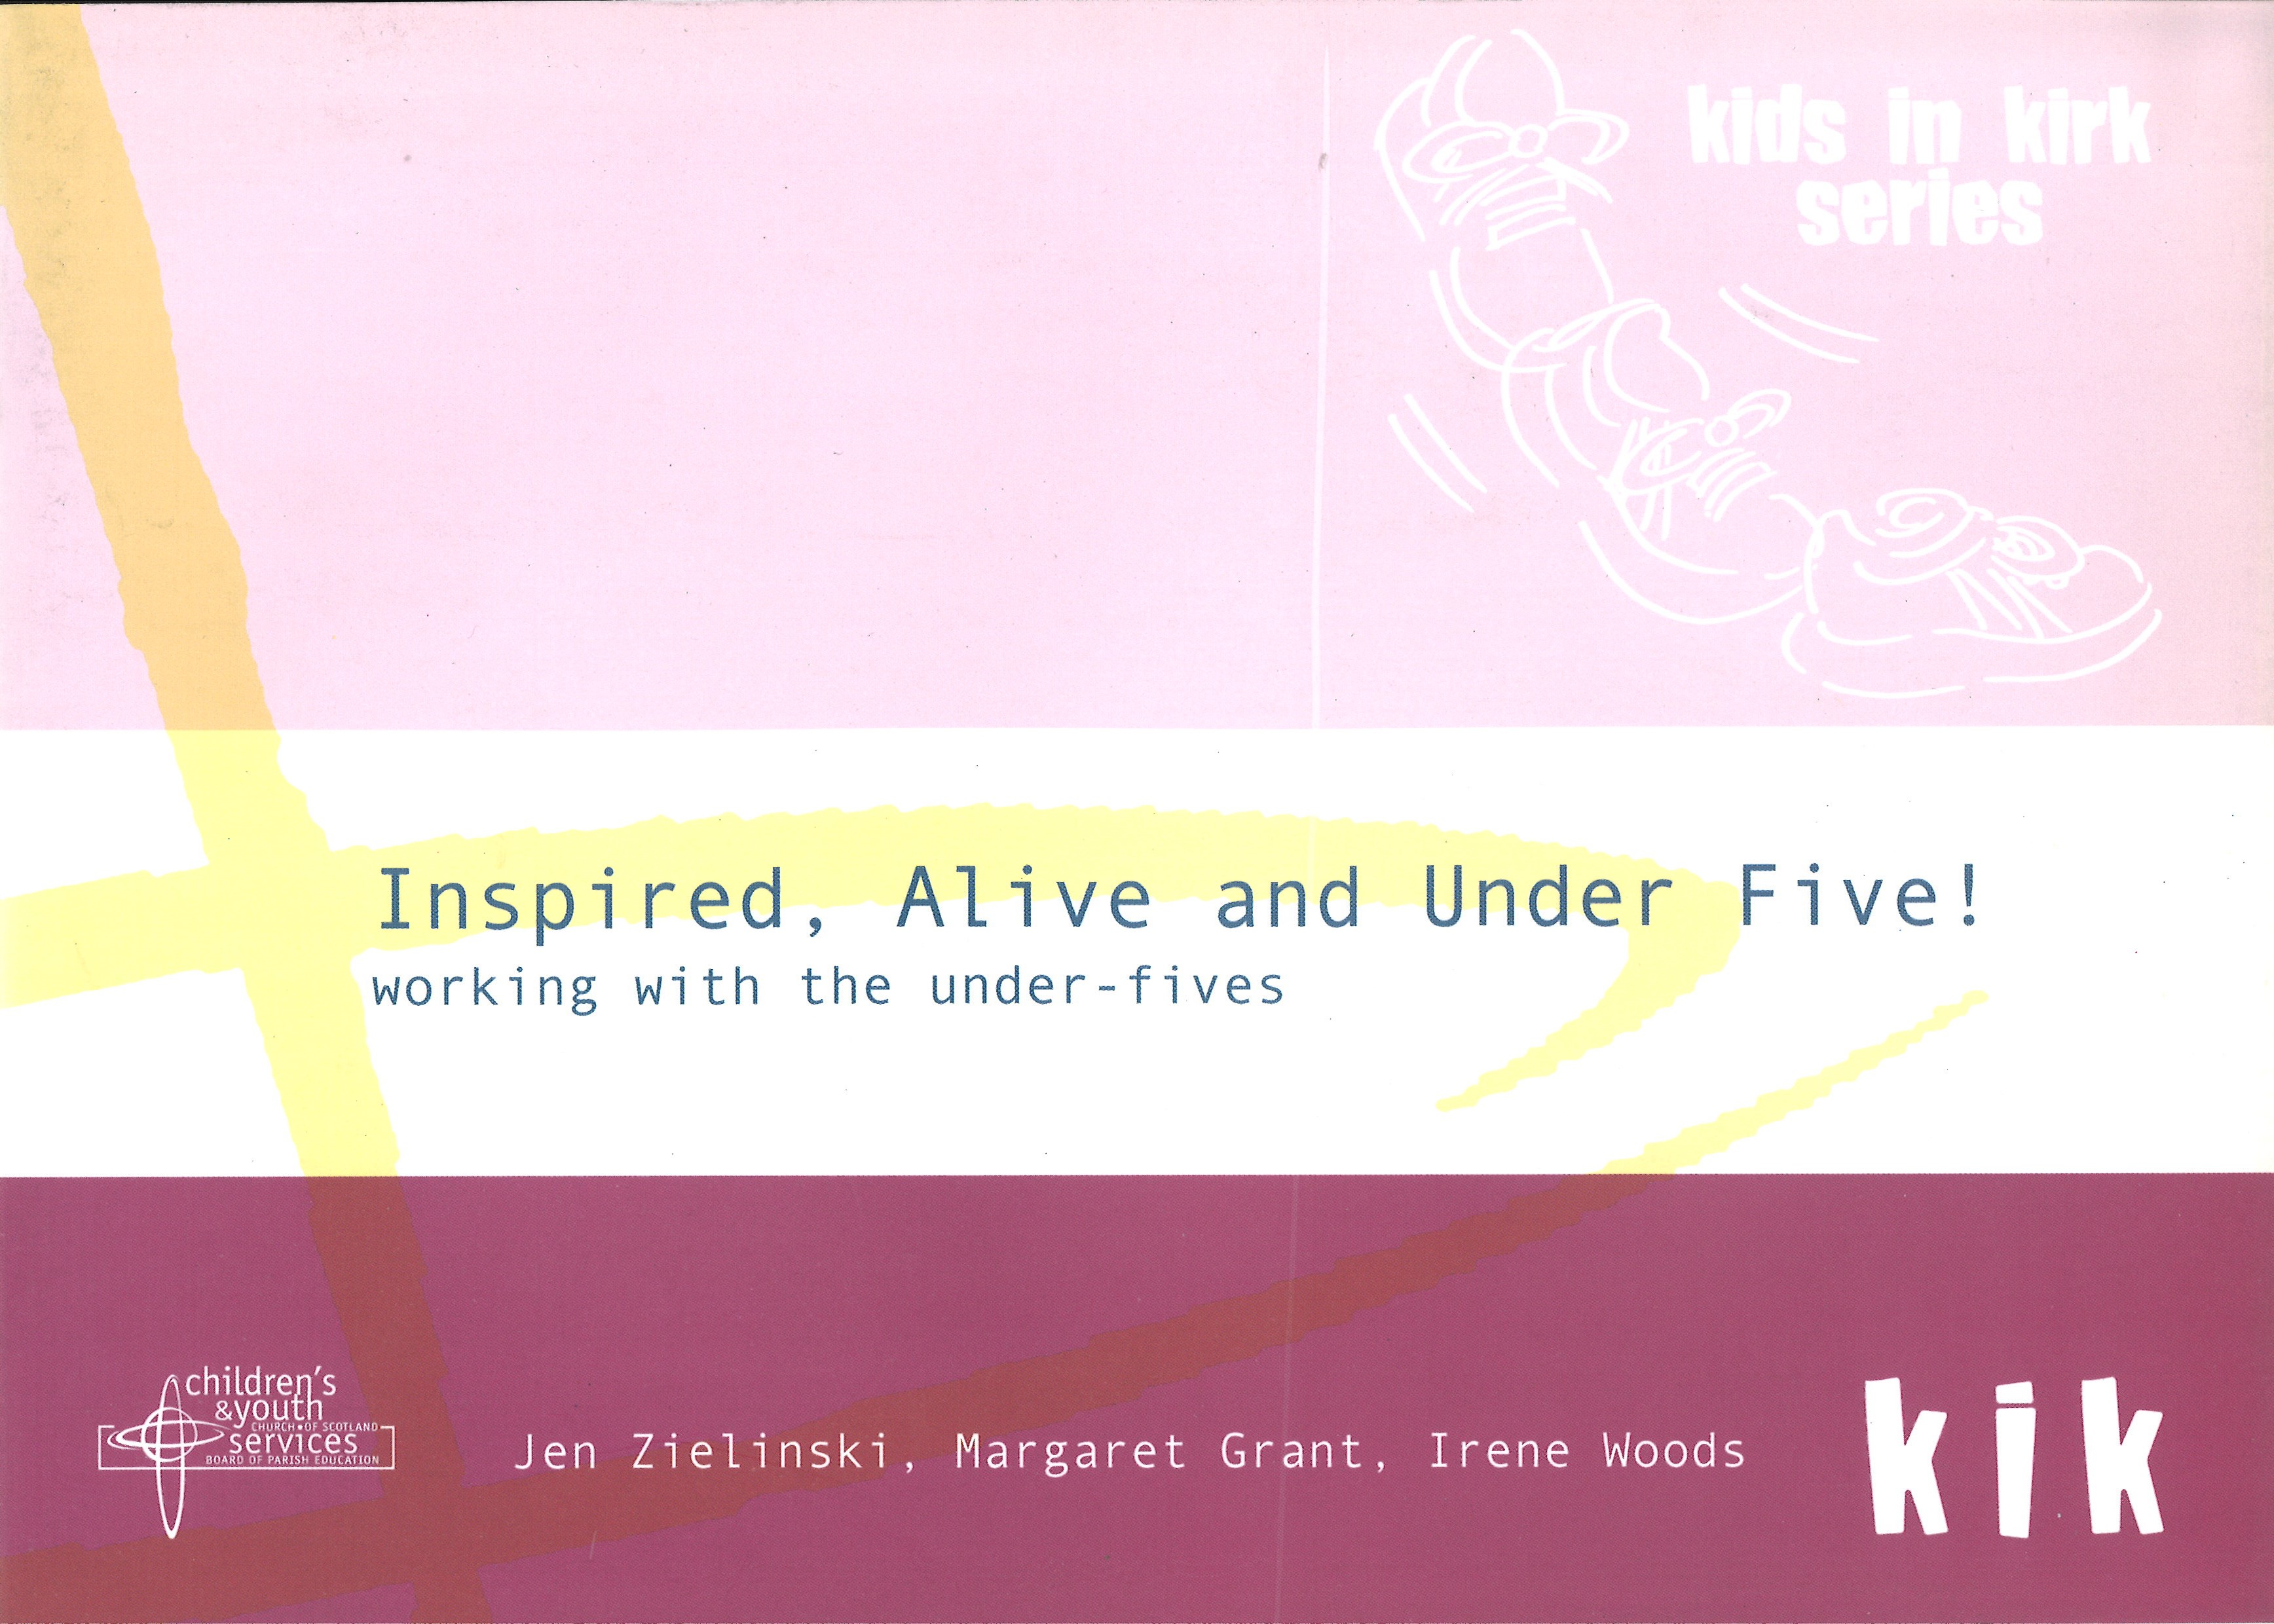 Inspired, Alive and Under Five!